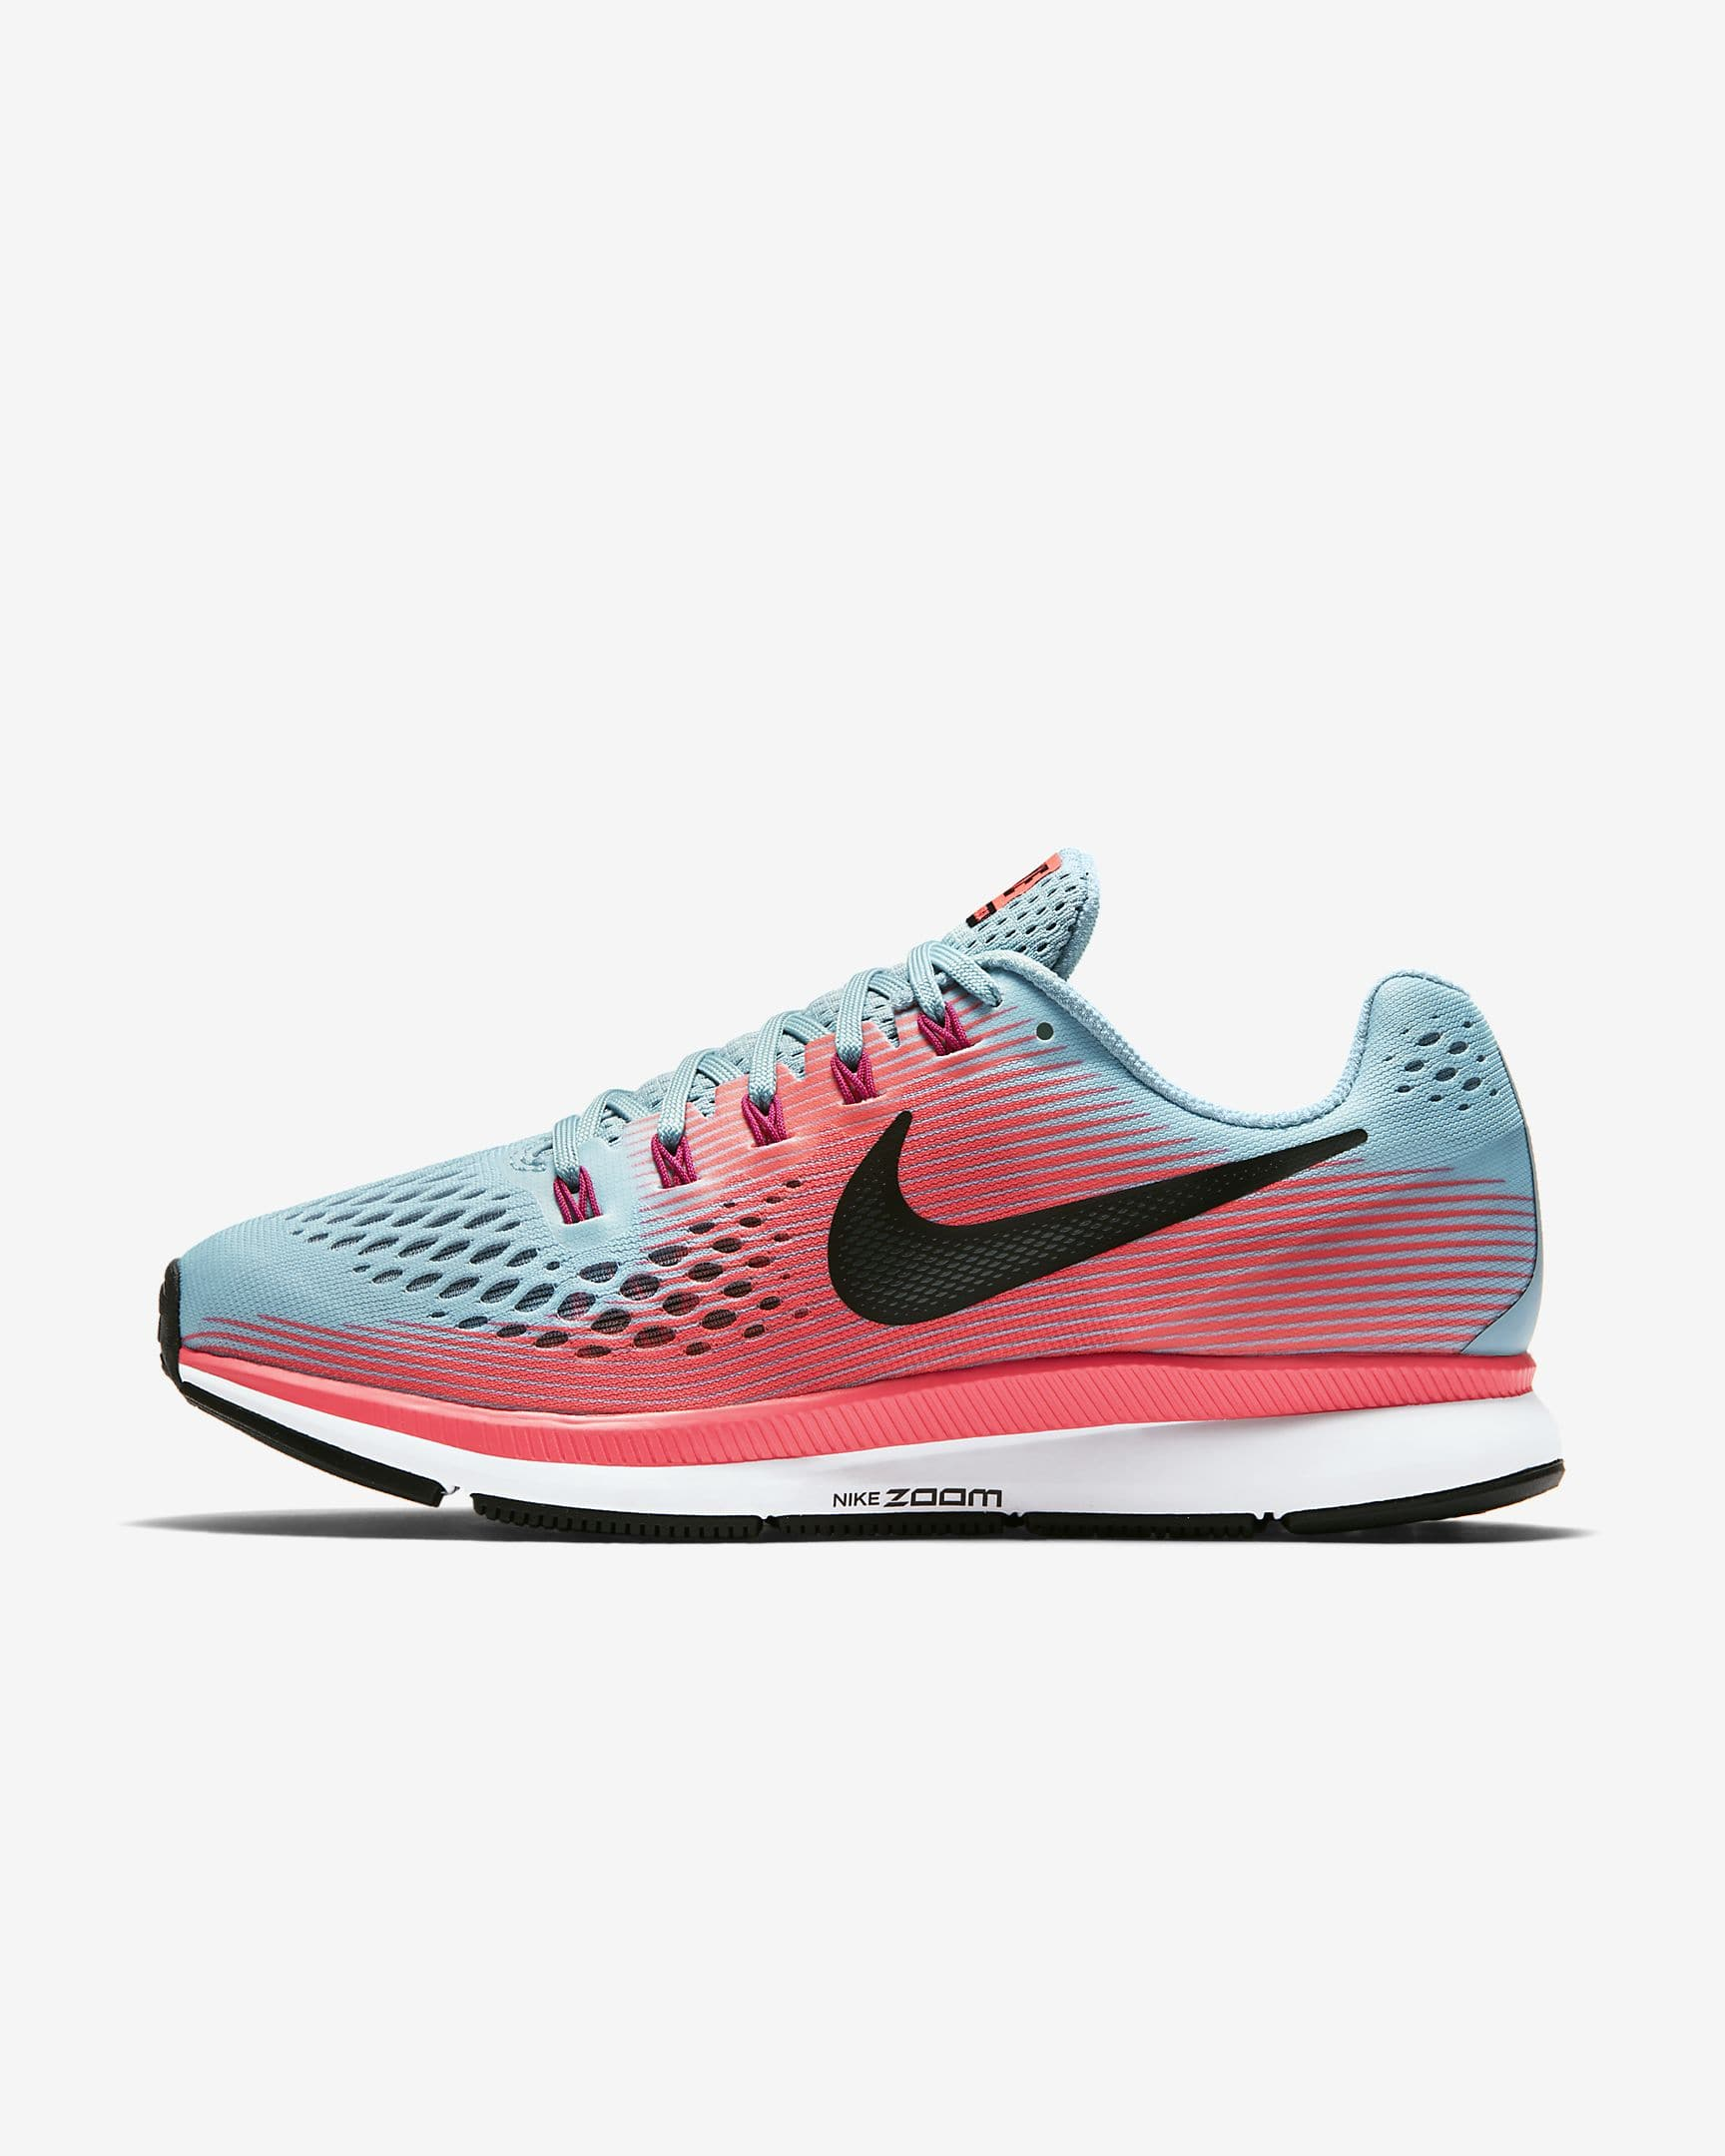 8da6081bc6d1 Nike Women s Air Zoom Pegasus 34 Running Shoe (racer pink ...